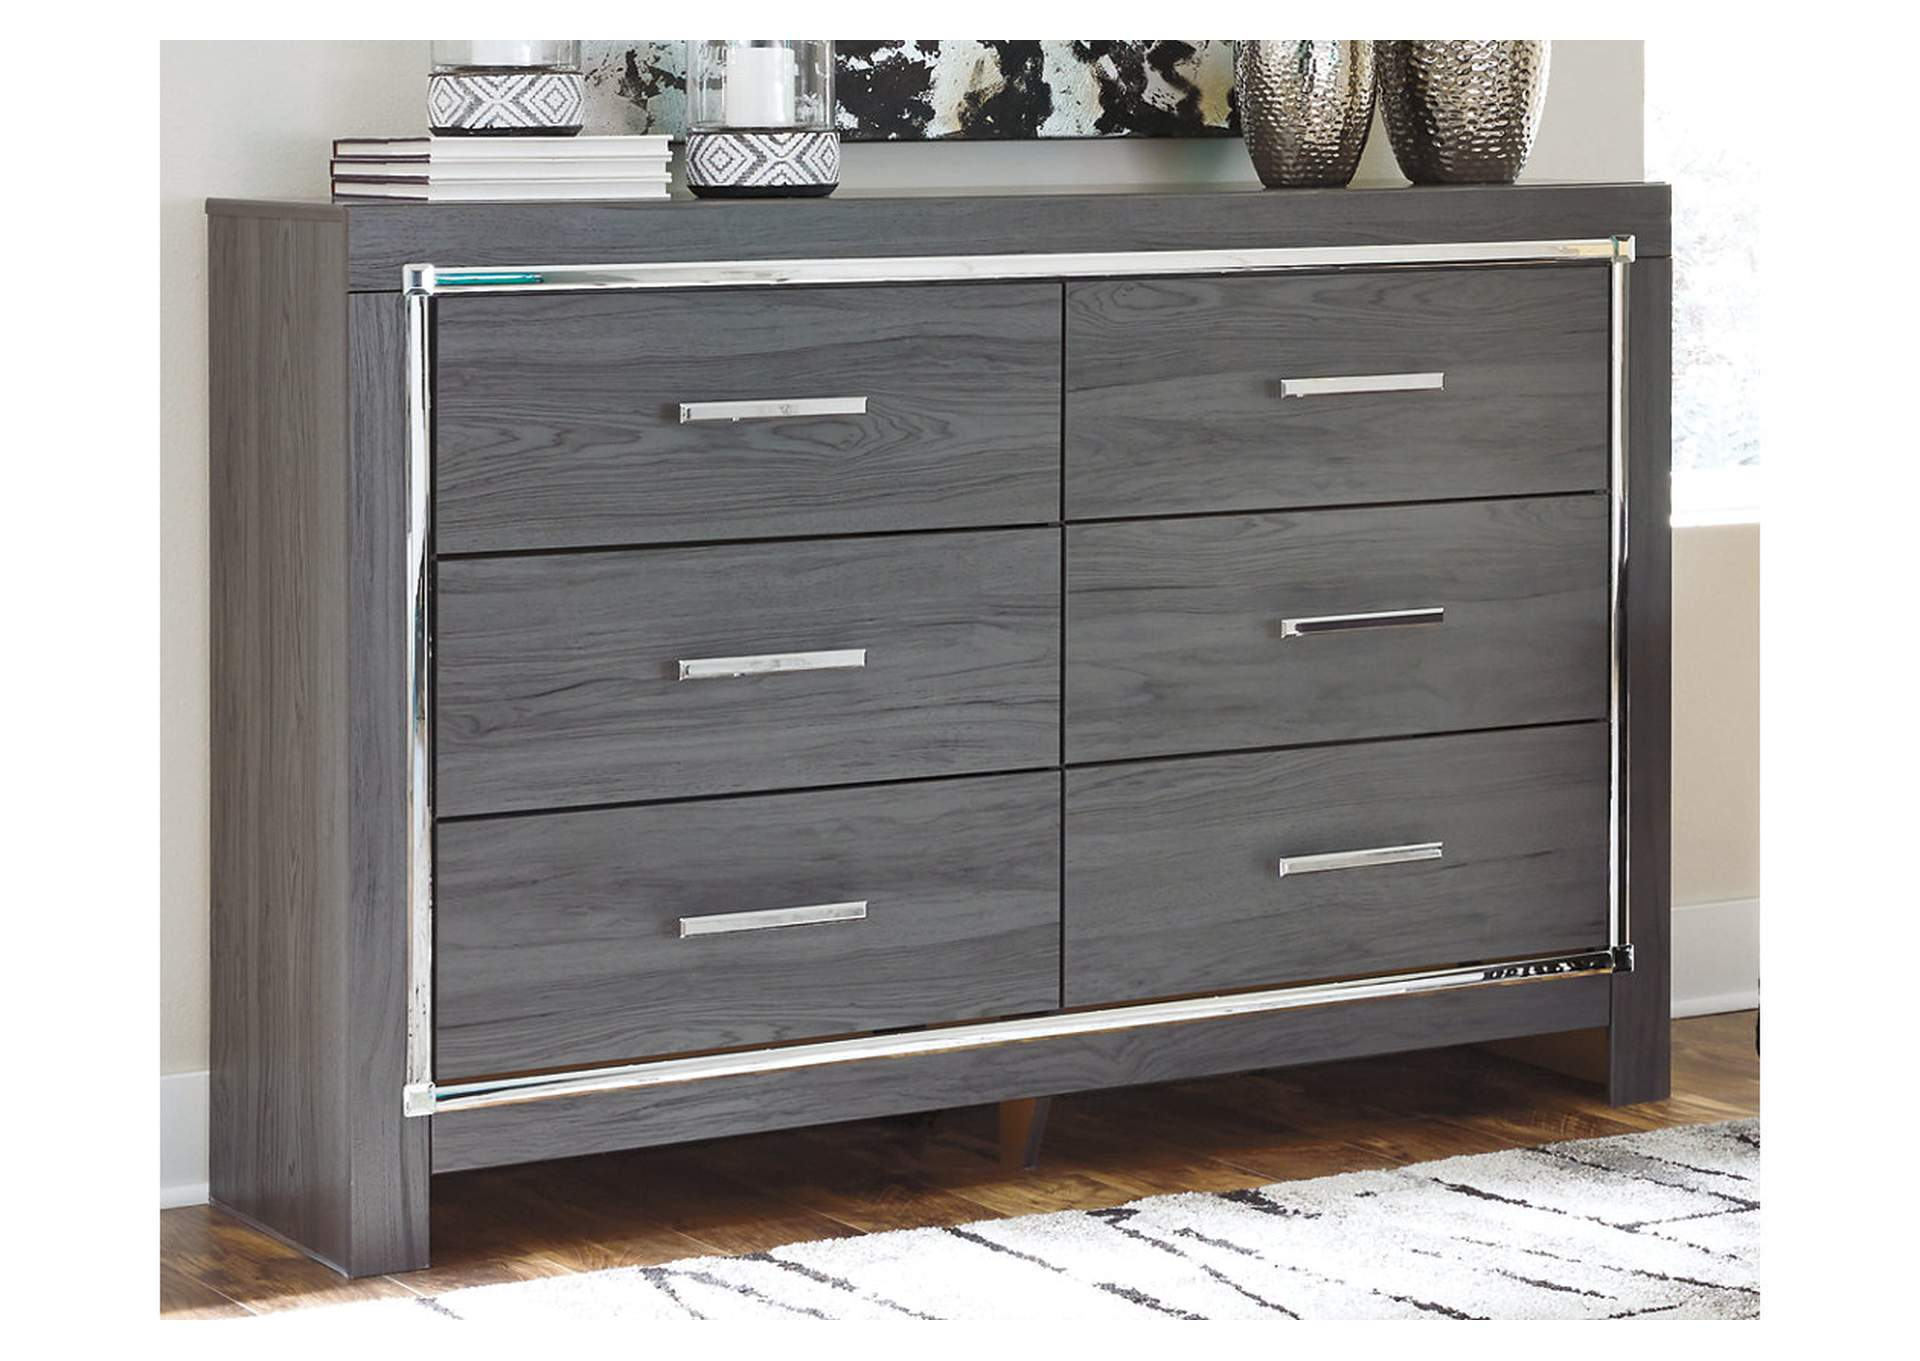 Lodanna Dresser,Signature Design By Ashley